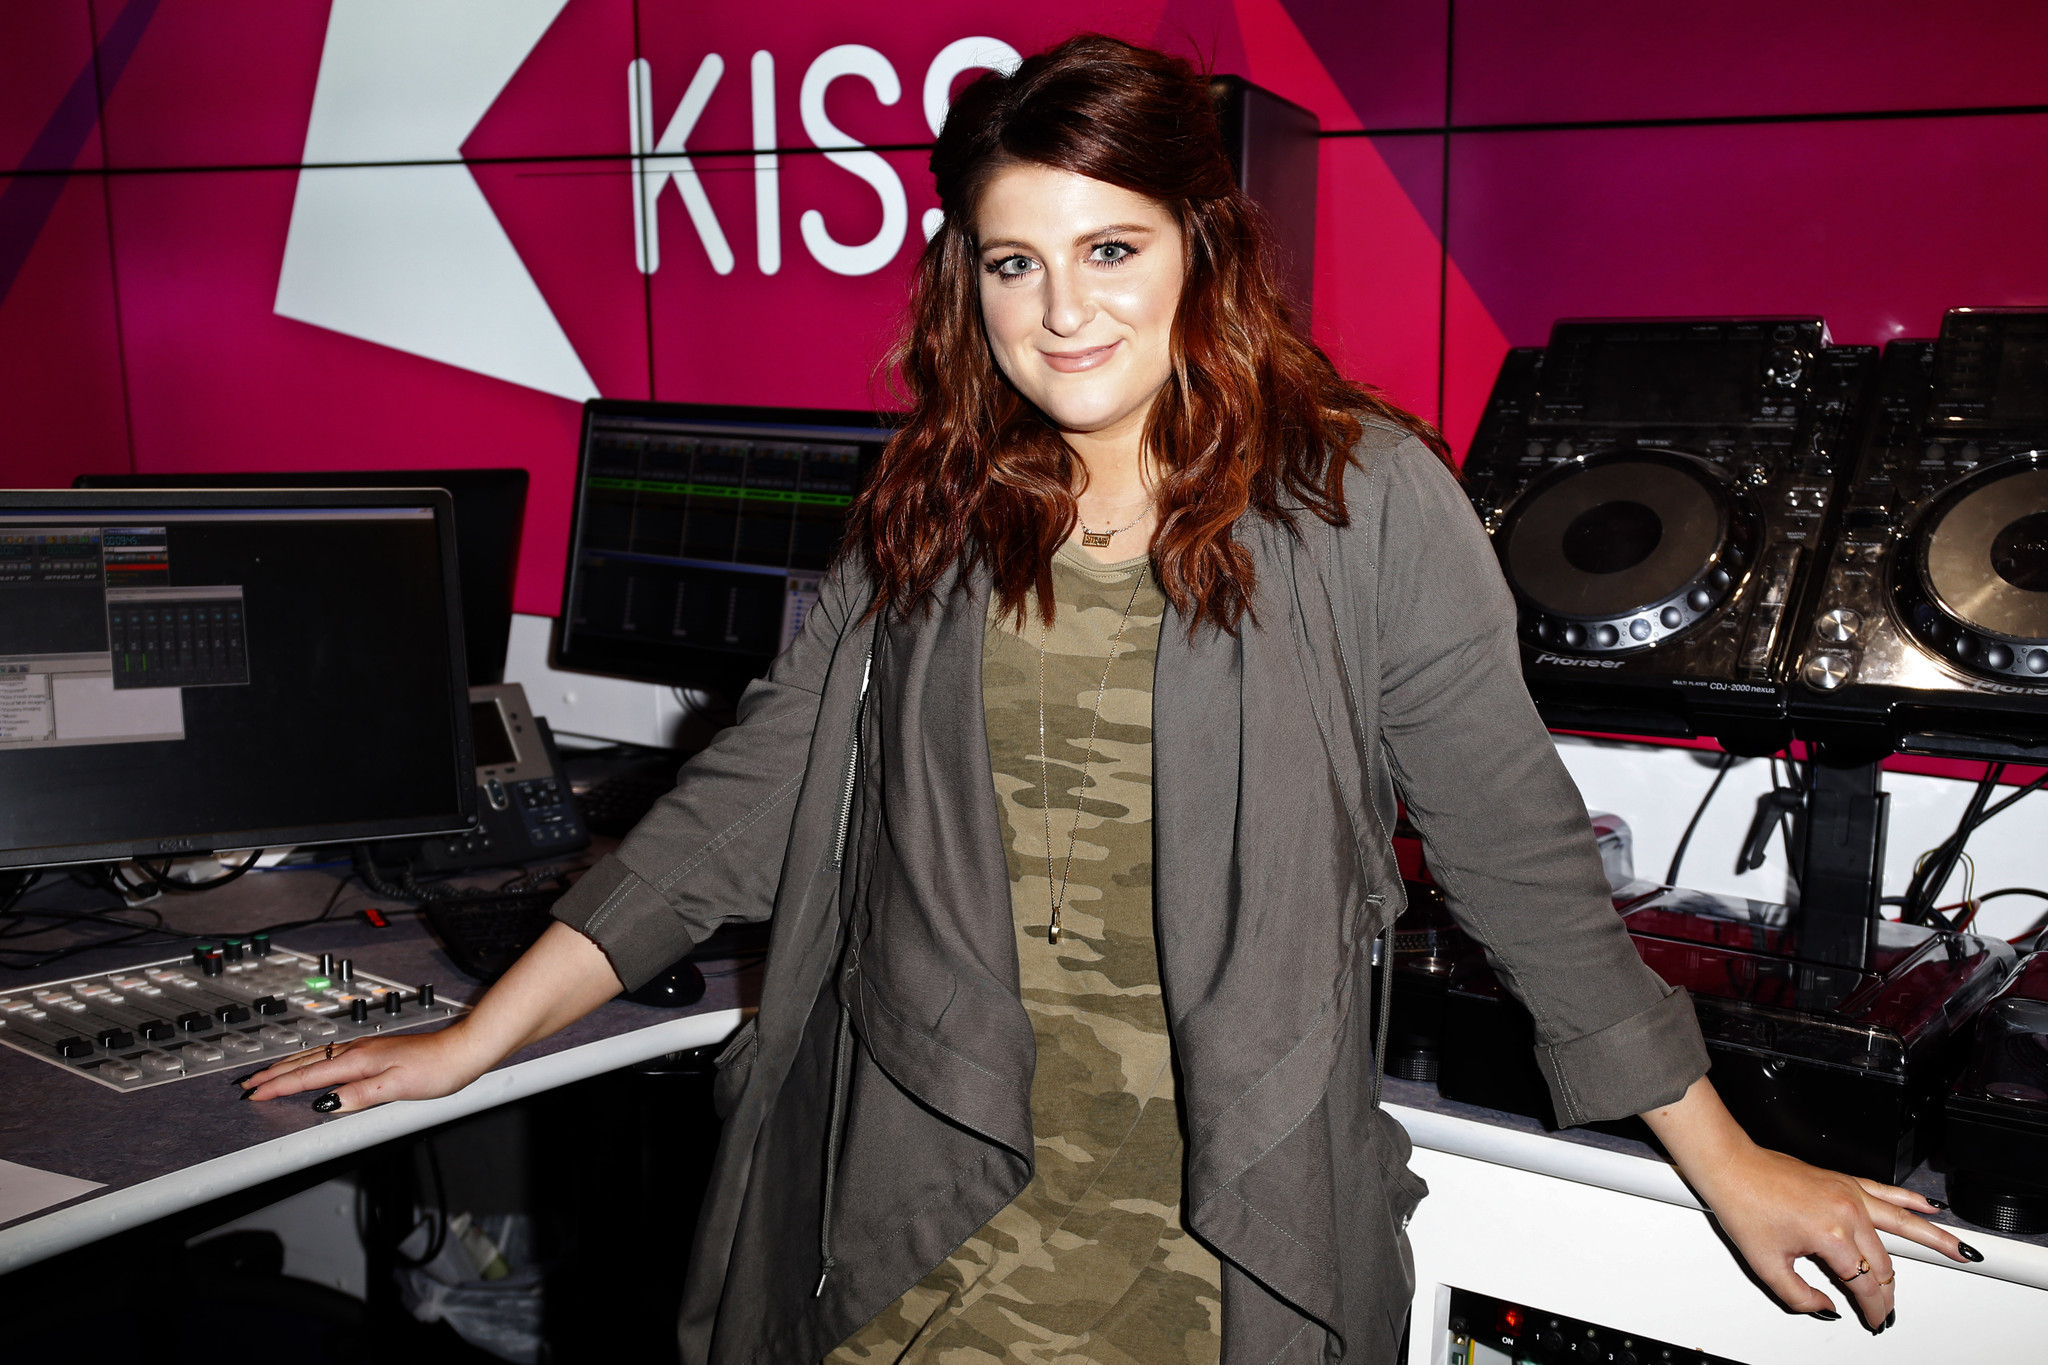 Meghan Trainor pulls music video after realizing she was photoshopped - Chicago Tribune